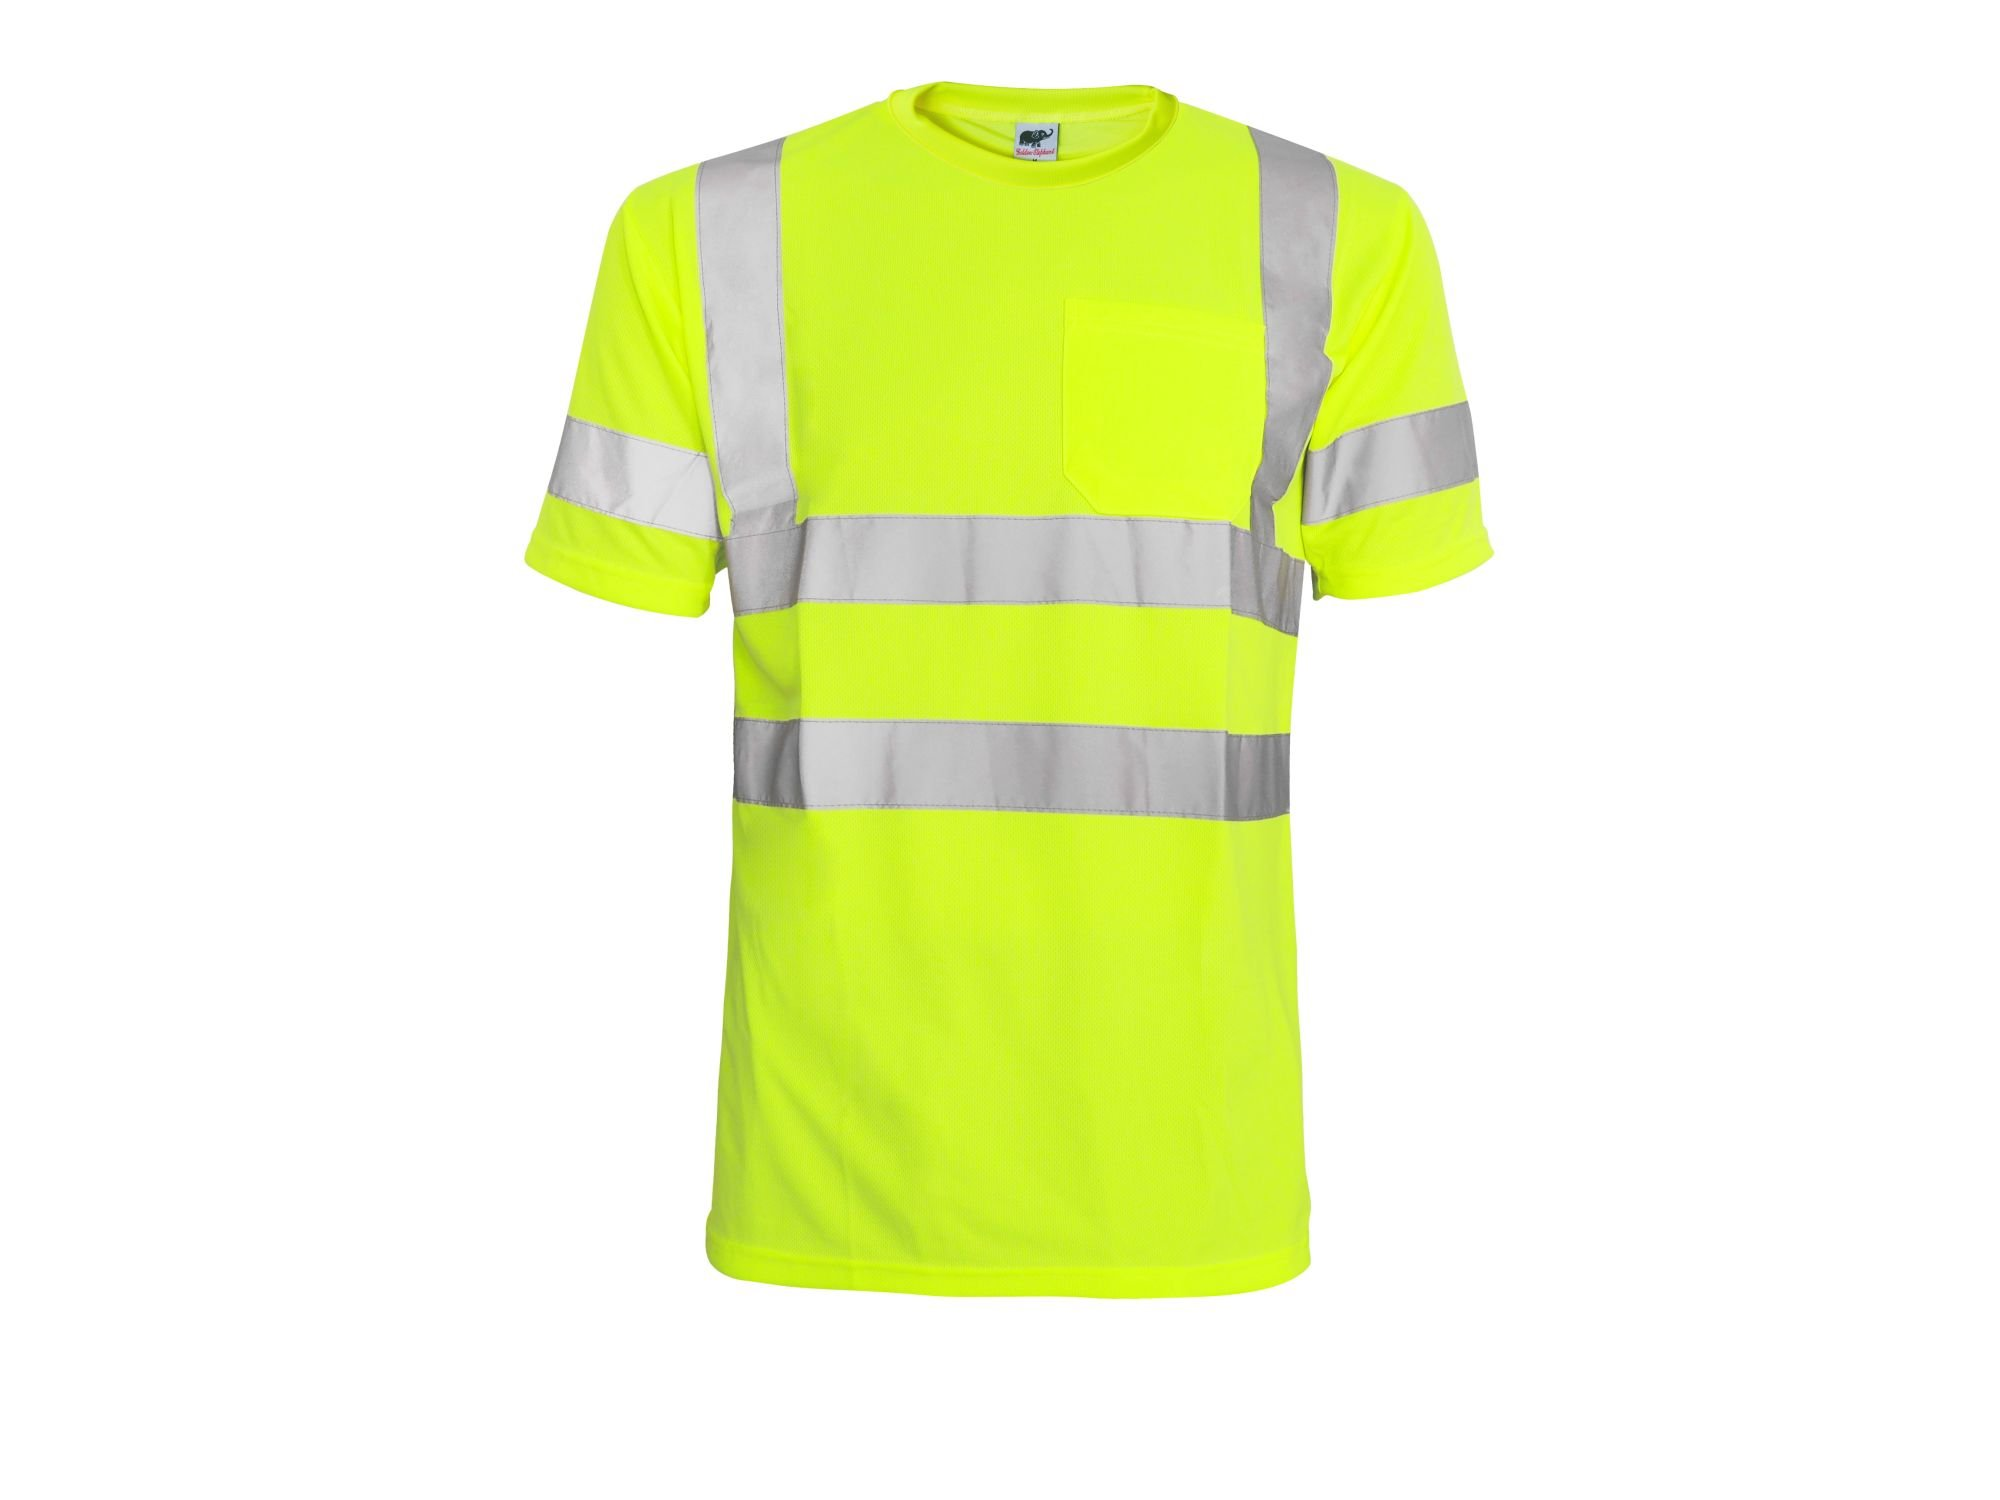 Mix-size Hl VlS T SHIRT ANSI Class 3 Reflective Safety Short SIeeve HlGH VlSIBILITY LIMEE COLOR SIZE